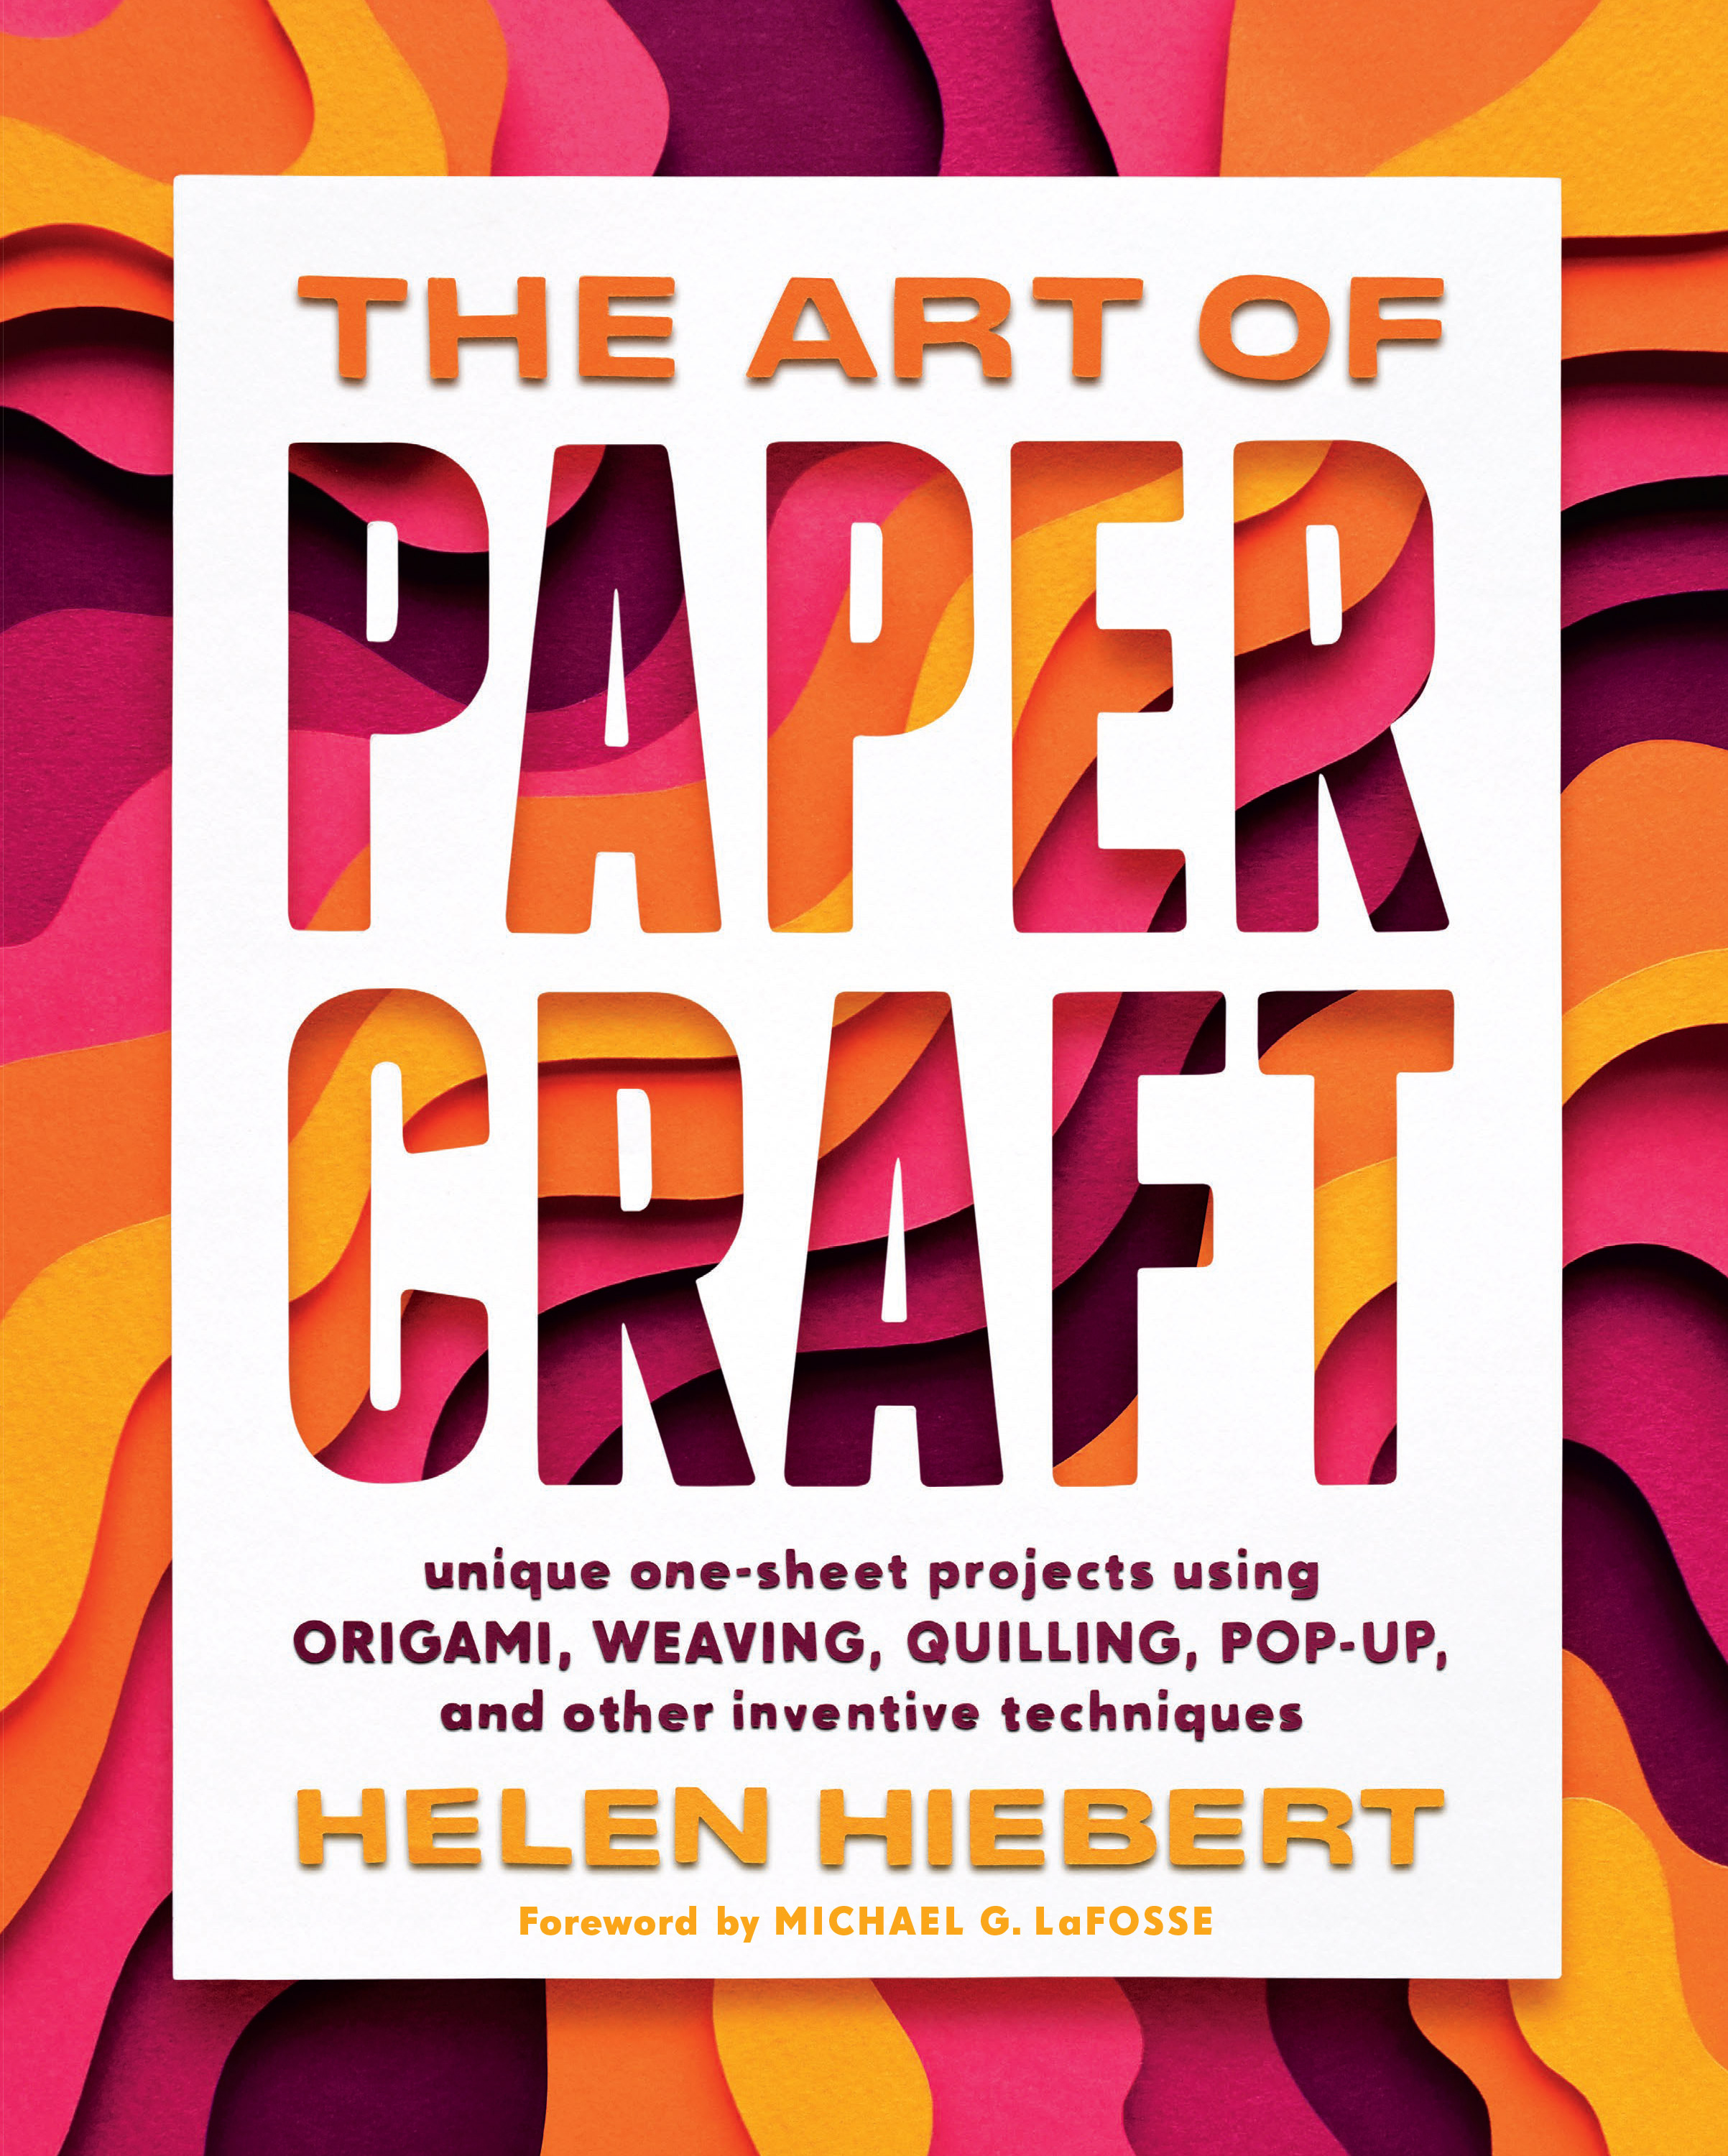 The Art of Papercraft Unique One-Sheet Projects Using Origami, Weaving, Quilling, Pop-Up, and Other Inventive Techniques - Helen Hiebert